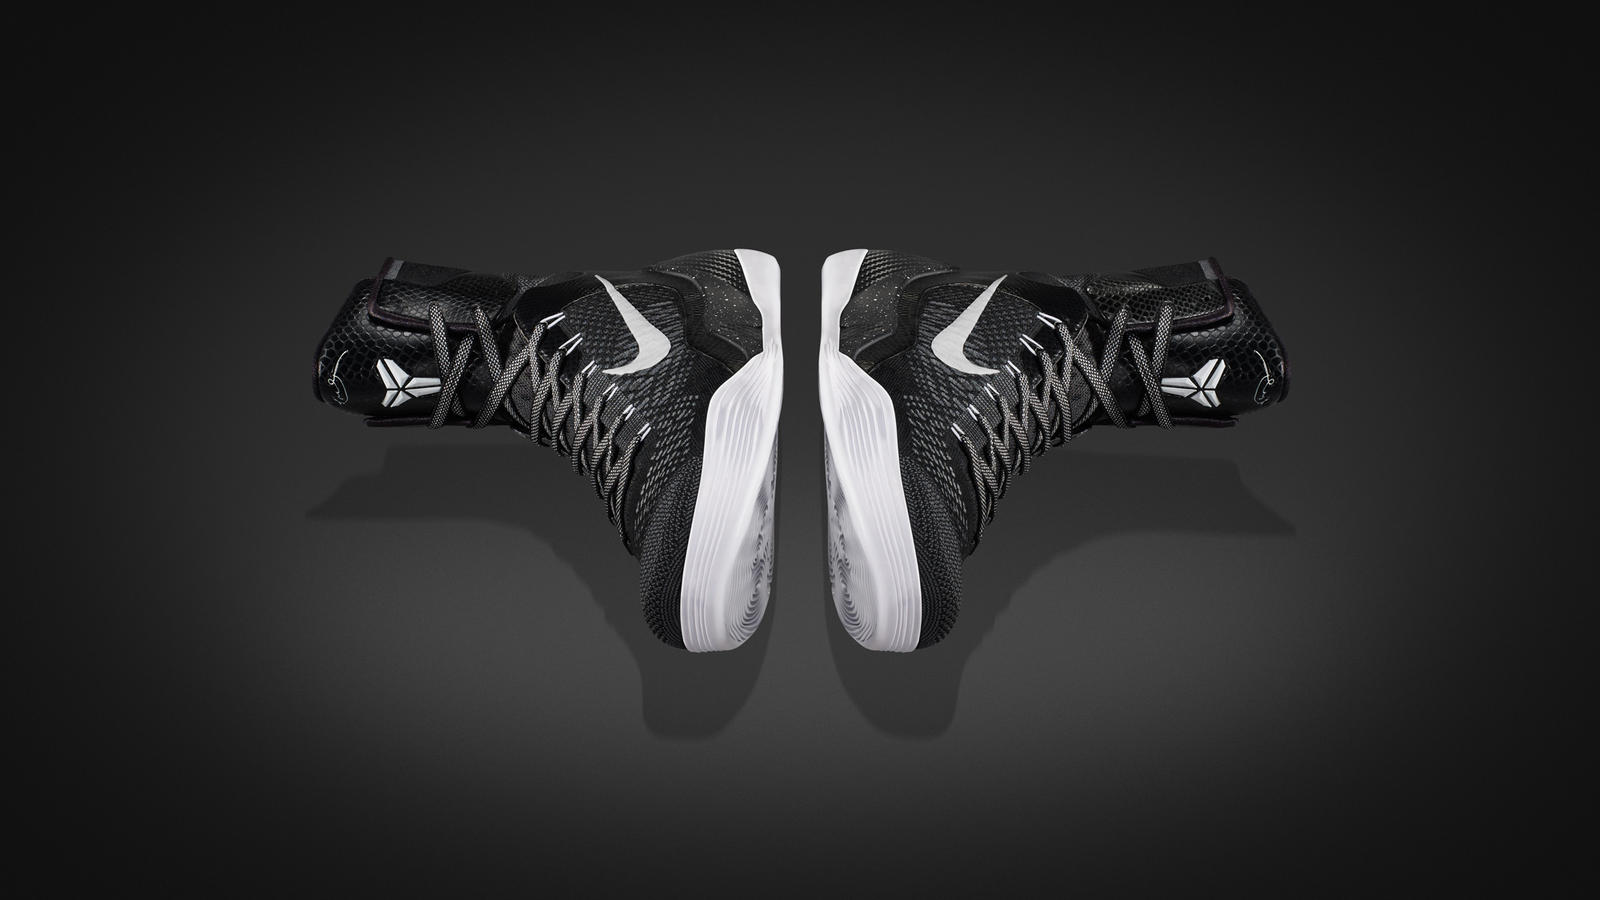 Kobe 9 Black Pair Hi